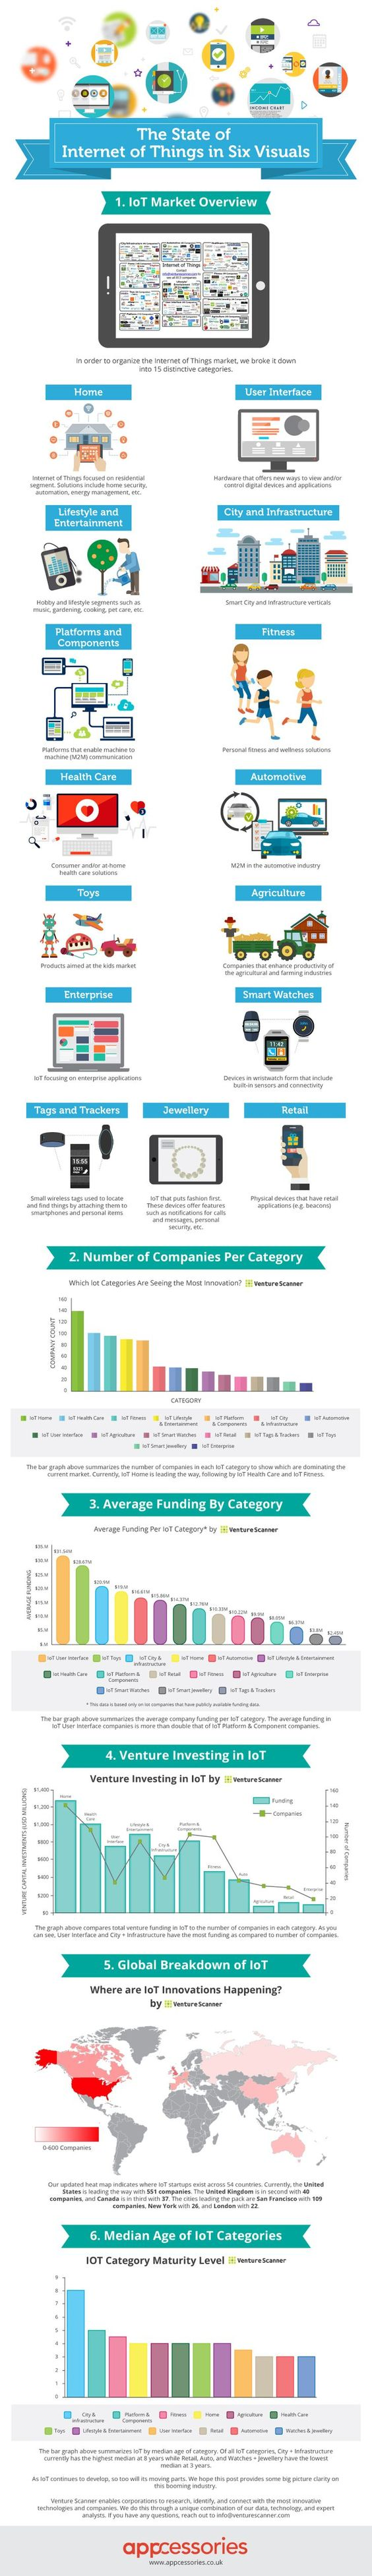 The State of Internet of Things in 6 Visuals #infographic #IOT #Technology